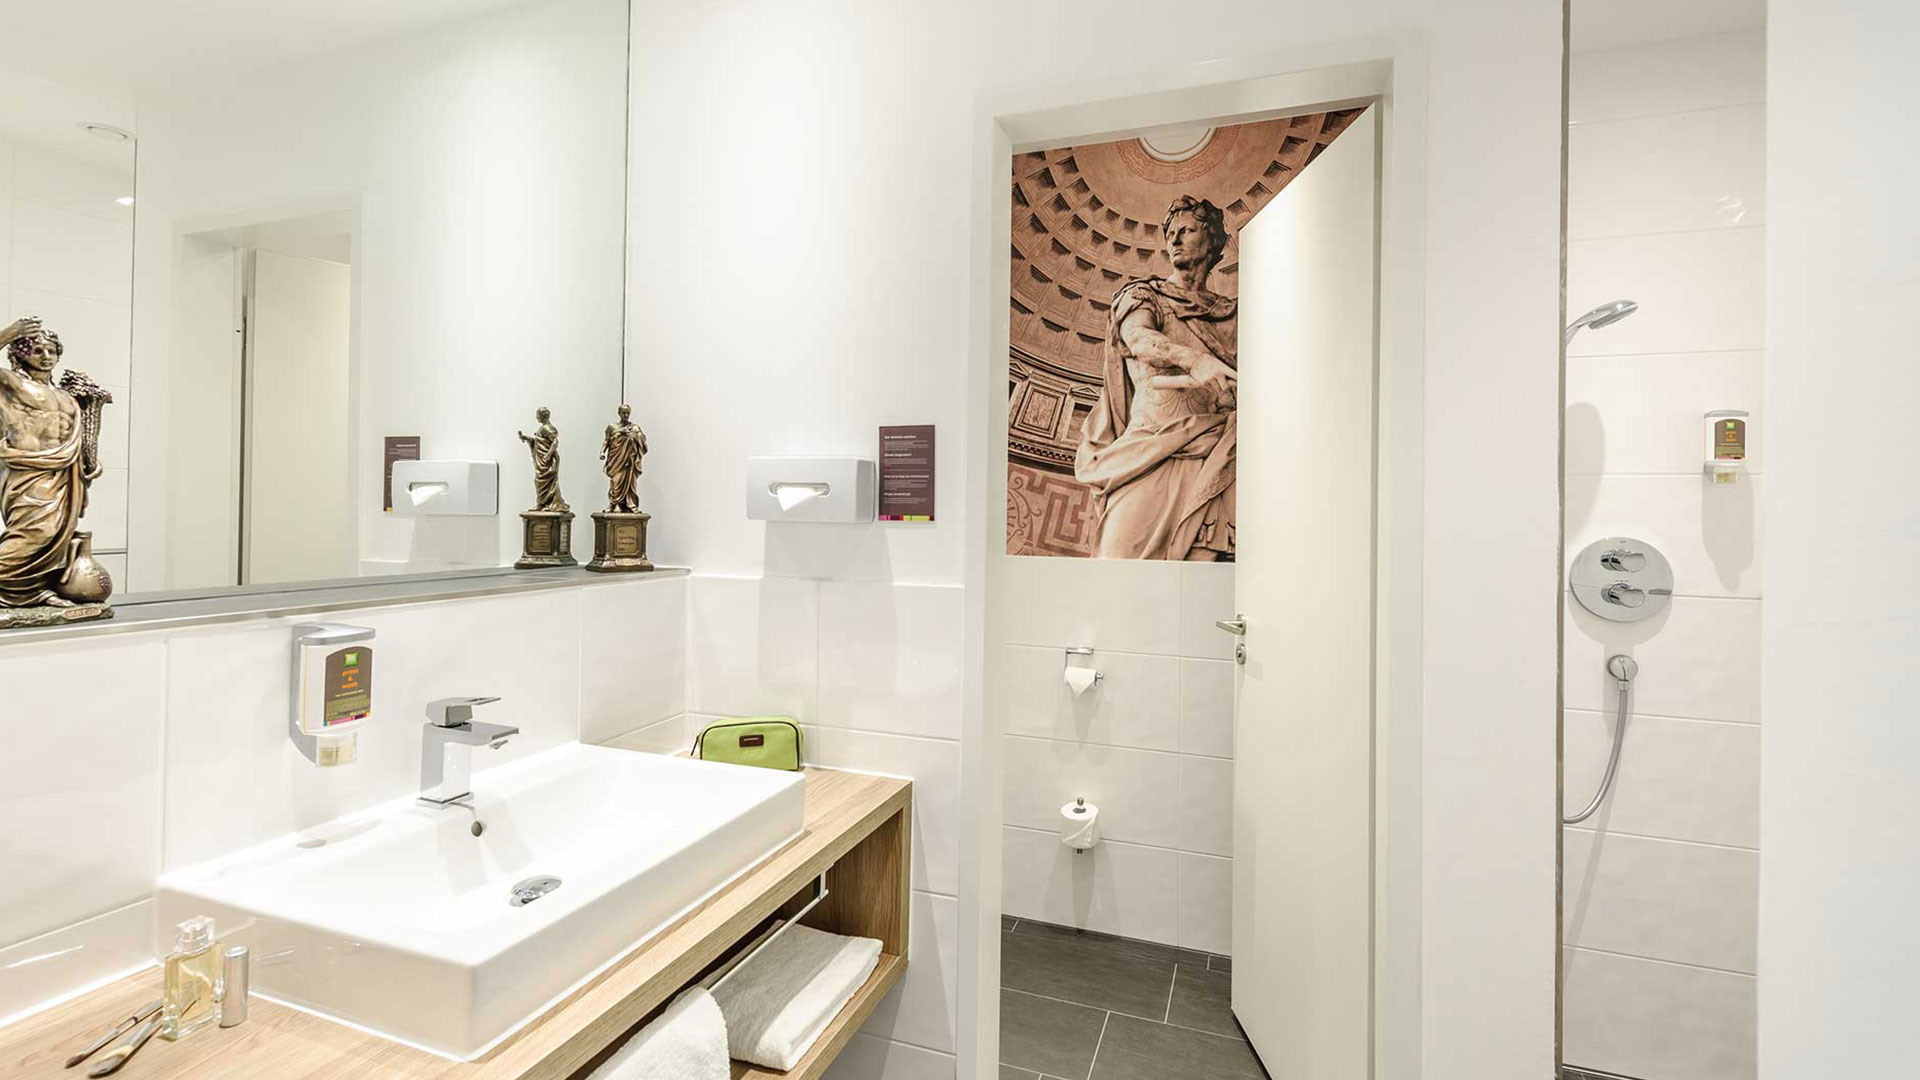 Photo of a bathroom - 02 - ibis Styles Trier